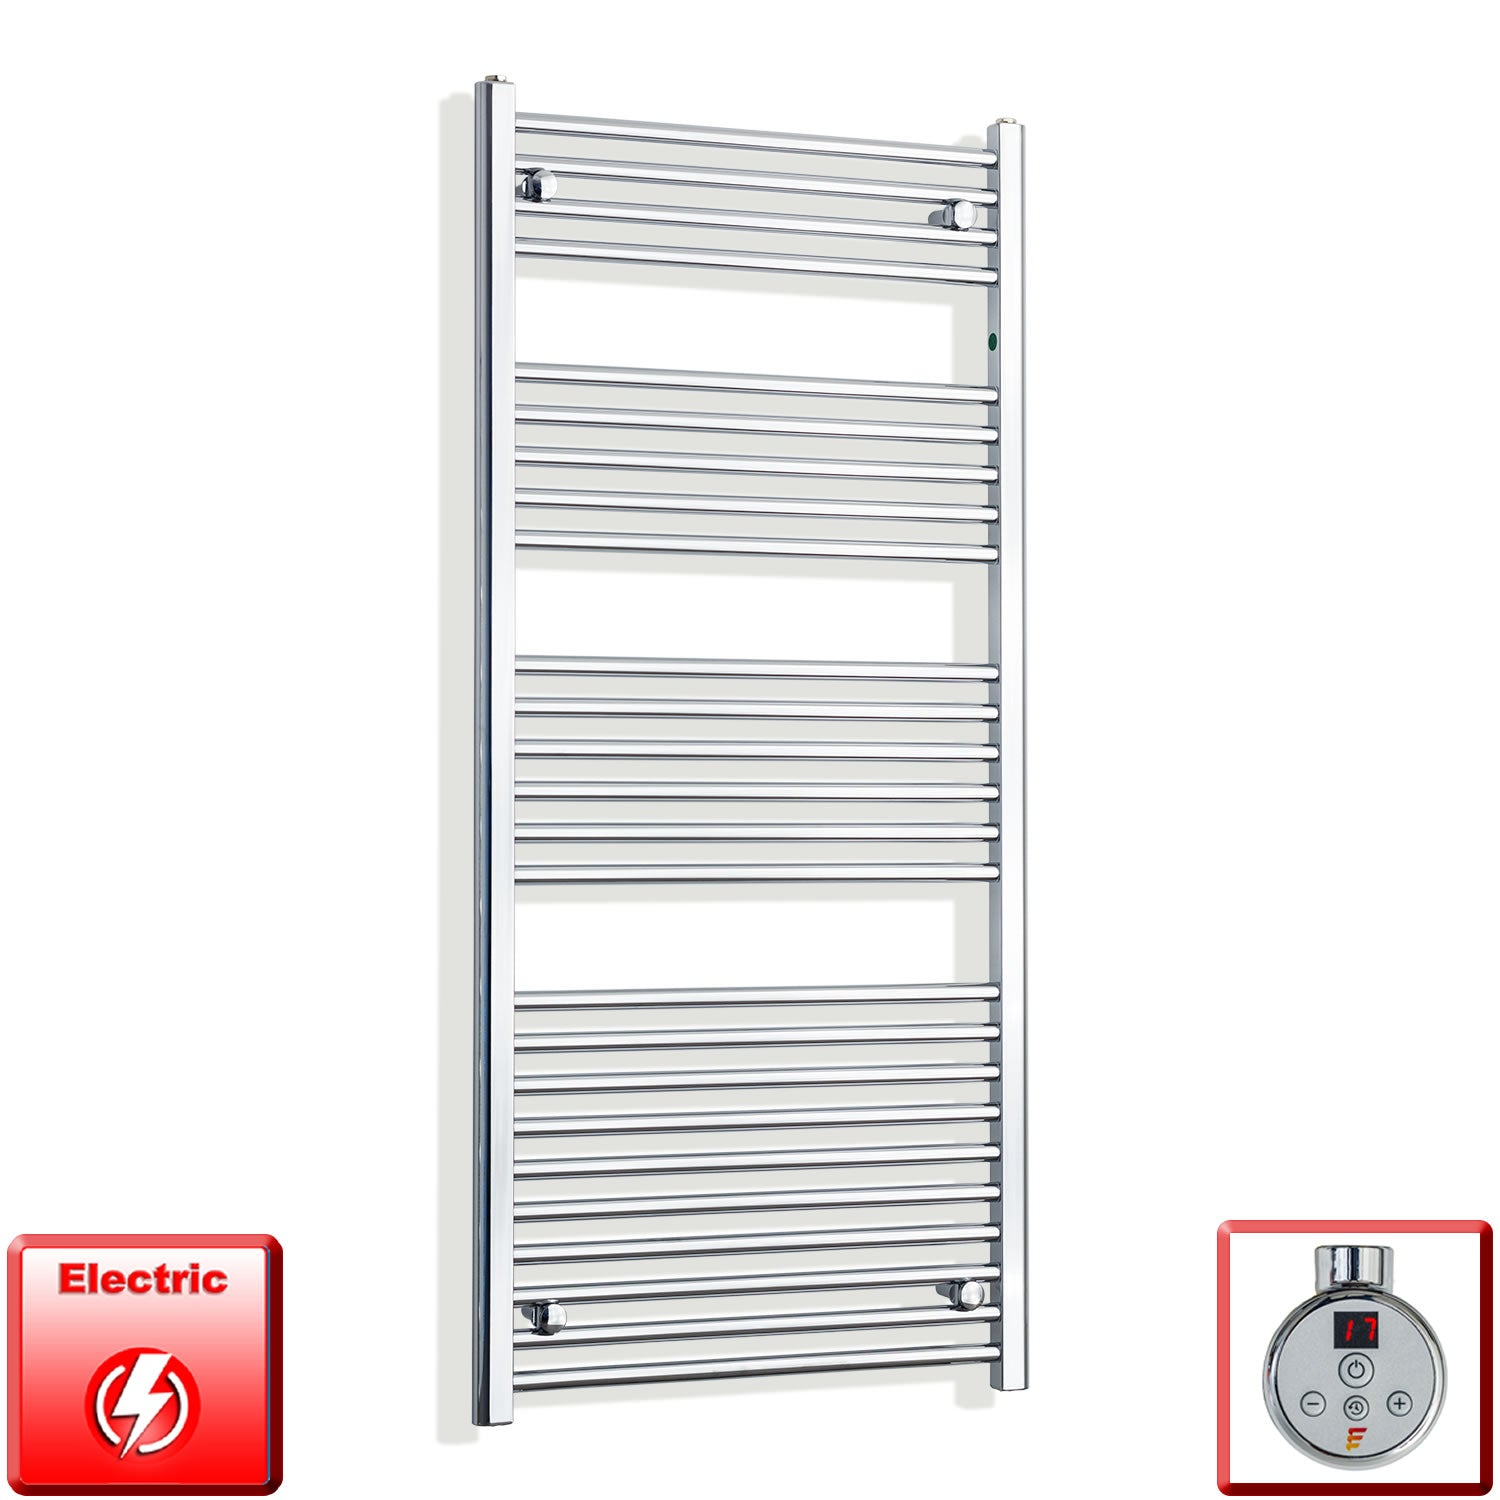 650mm Wide 1400mm High Pre-Filled Chrome Electric Towel Rail Radiator With Thermostatic DIGI Element